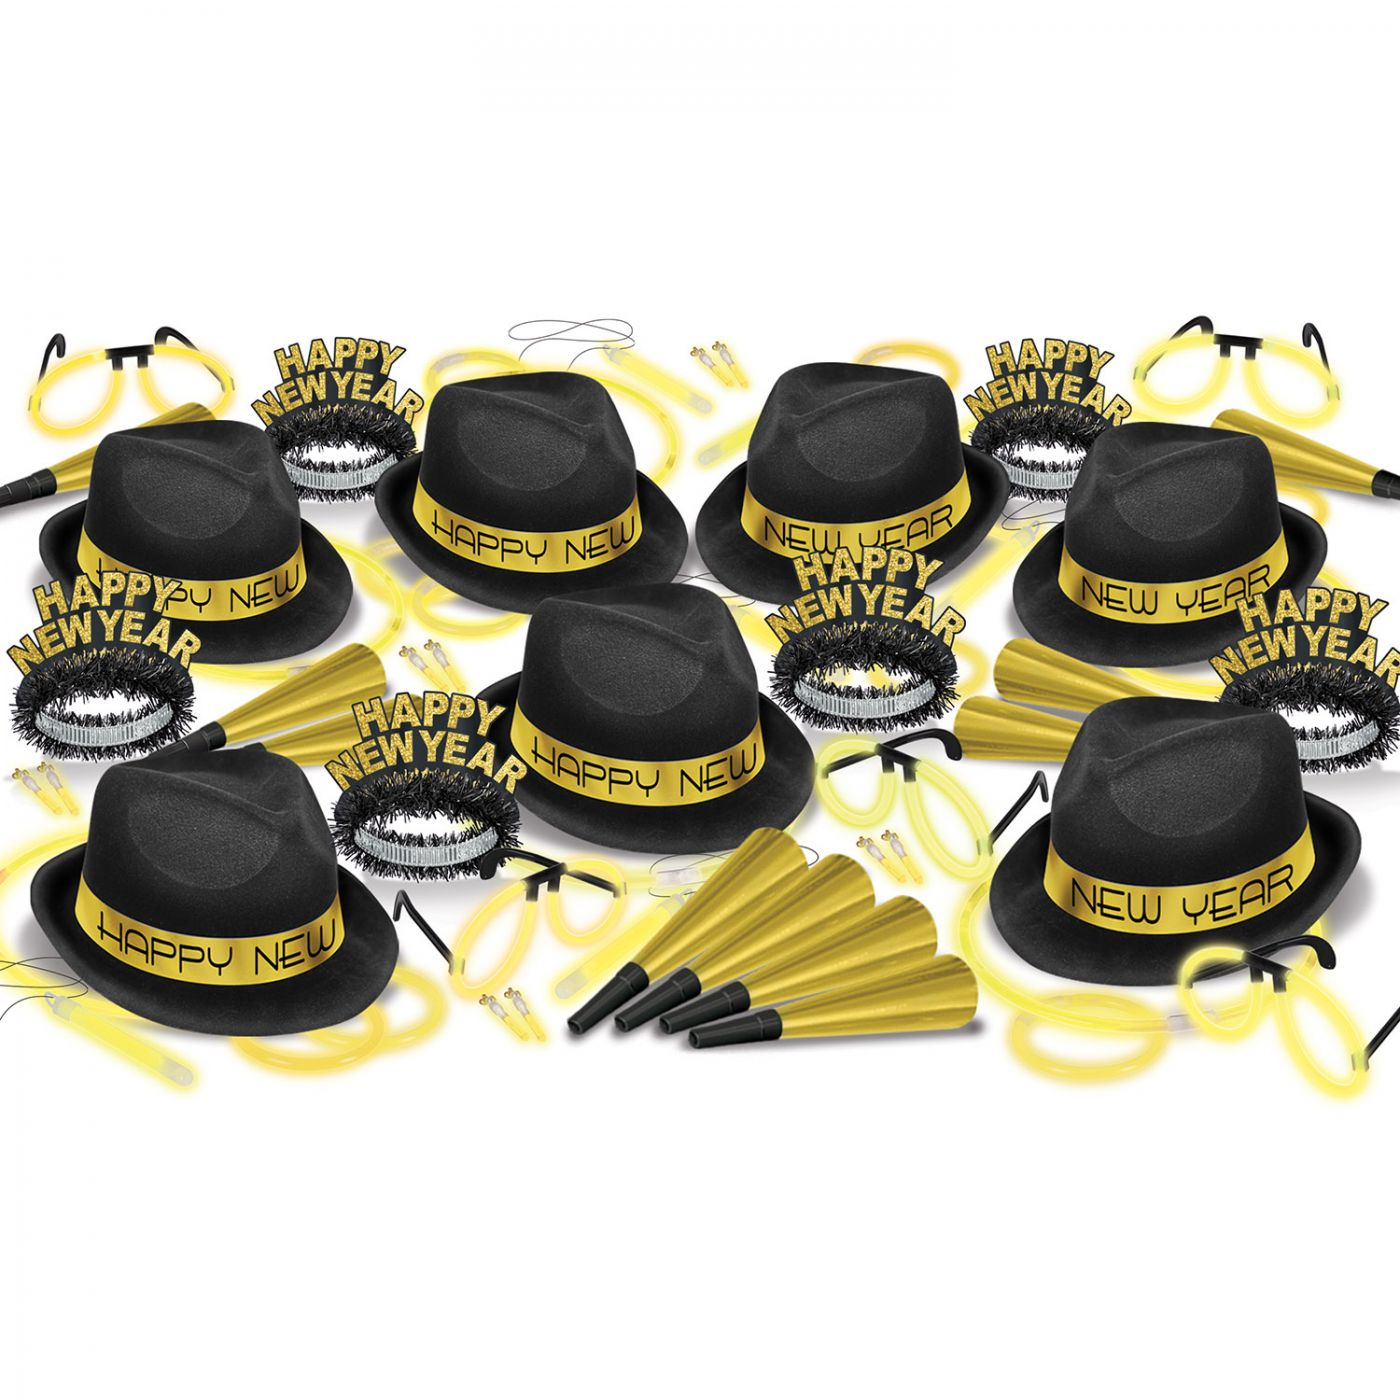 Gold Glow Assortment for 50 image